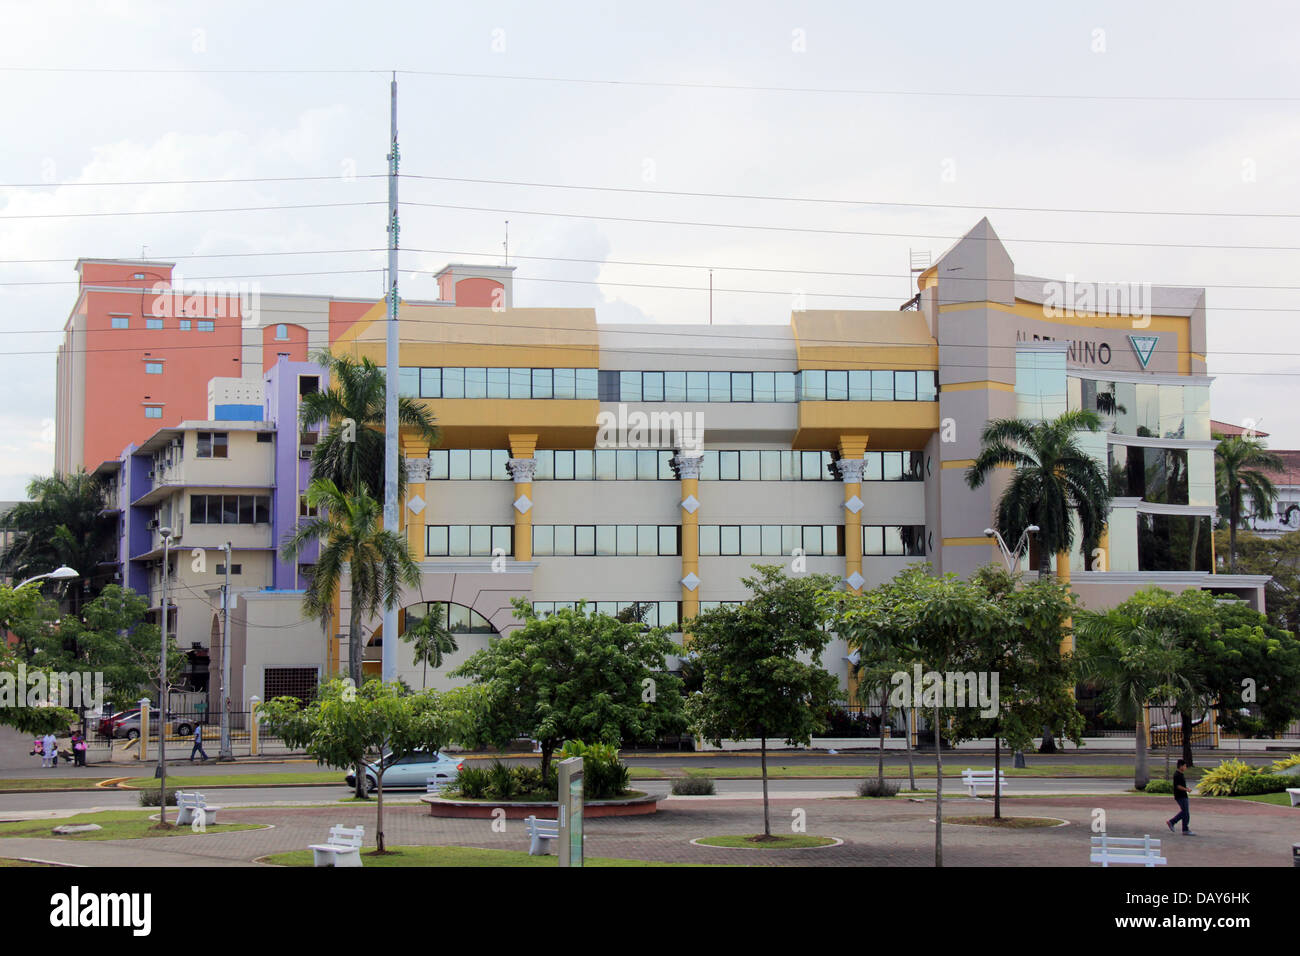 Exterior of the outpatient facilities of the Hospital del Niño (Children's Hospital) of Panama City seen - Stock Image